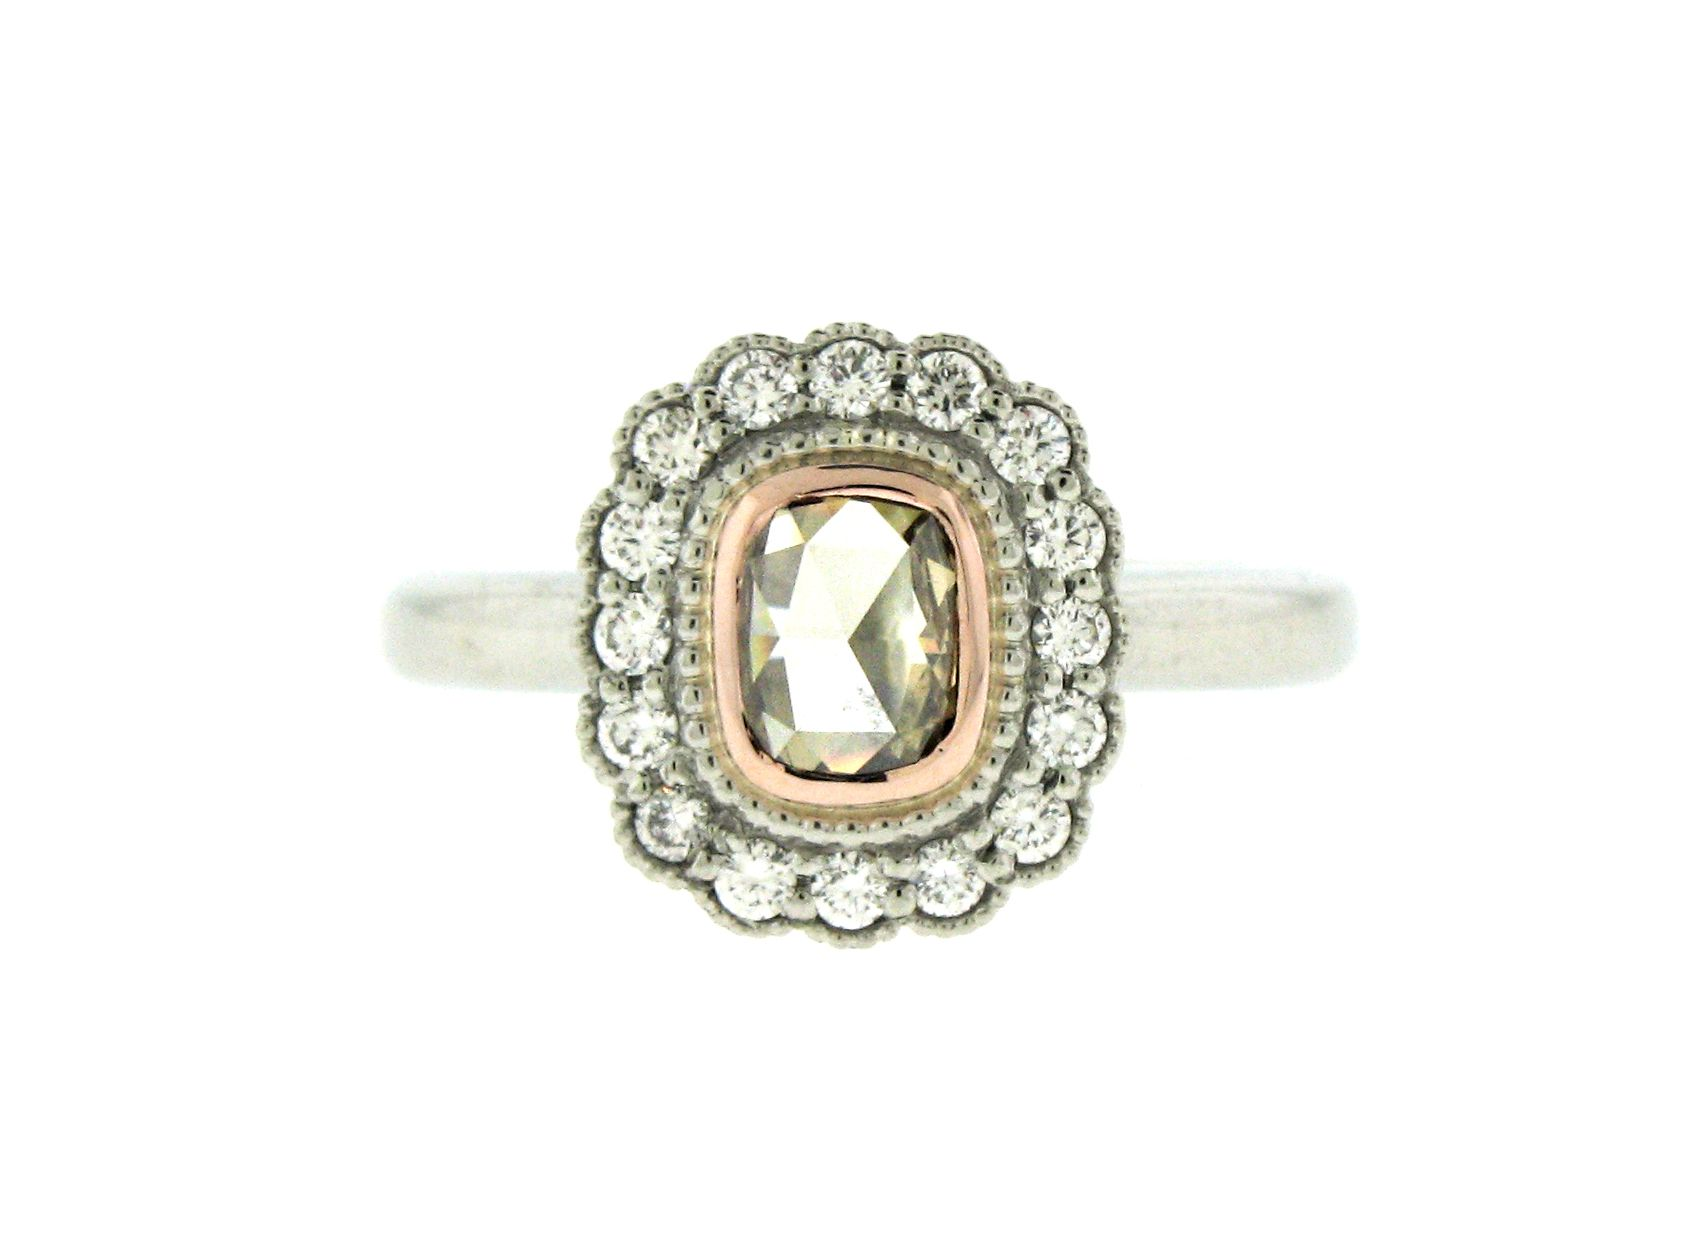 Modern vintage collection k white and rose gold diamond engagement